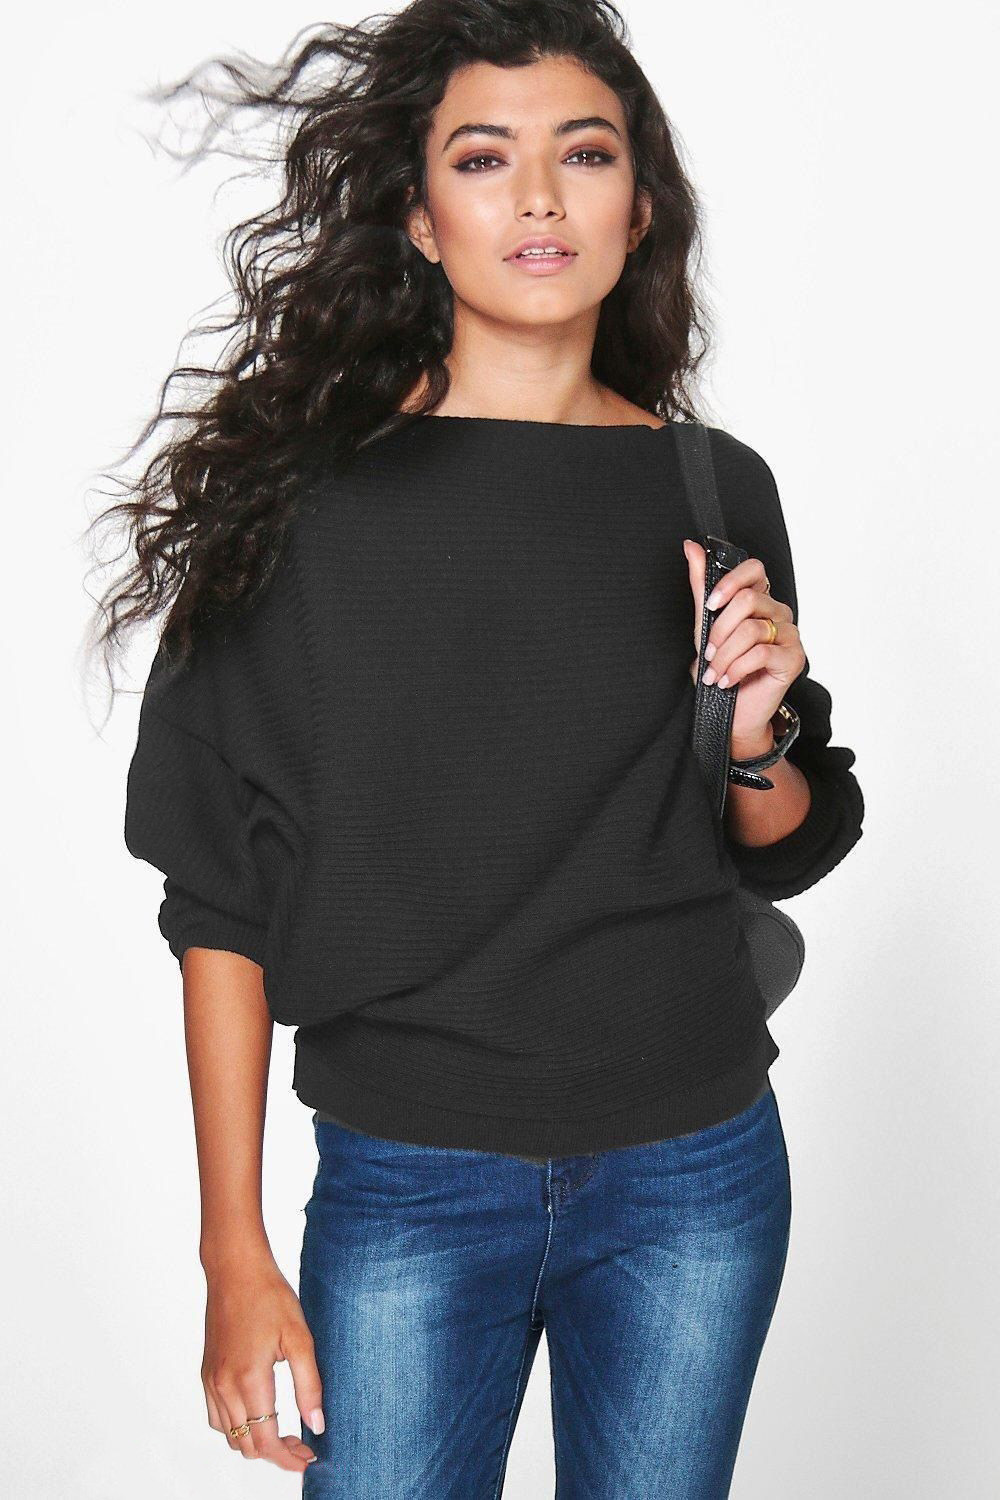 New Autumn Winter 2020 Casual Women Sweater Batwing Long Sleeve Knitted Sweater Solid Color Pullover Sweater Loose Cotton Tops#